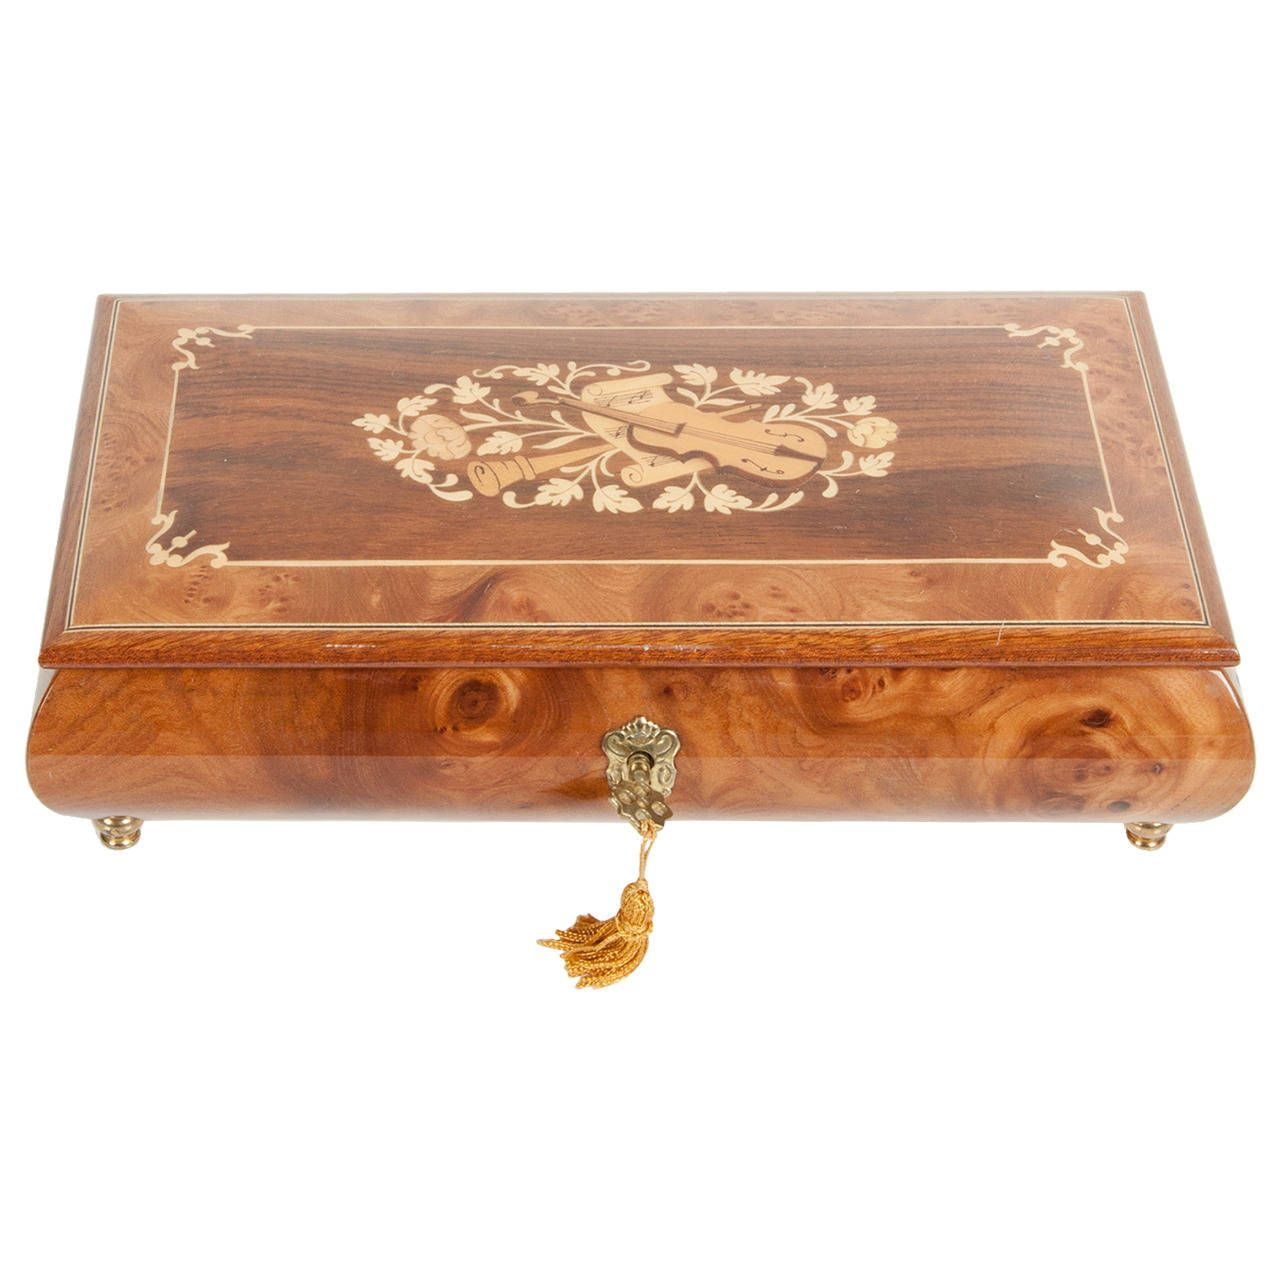 Antique Jewelry Box | From a unique collection of antique and modern boxes at https://www.1stdibs.com/furniture/decorative-objects/boxes/